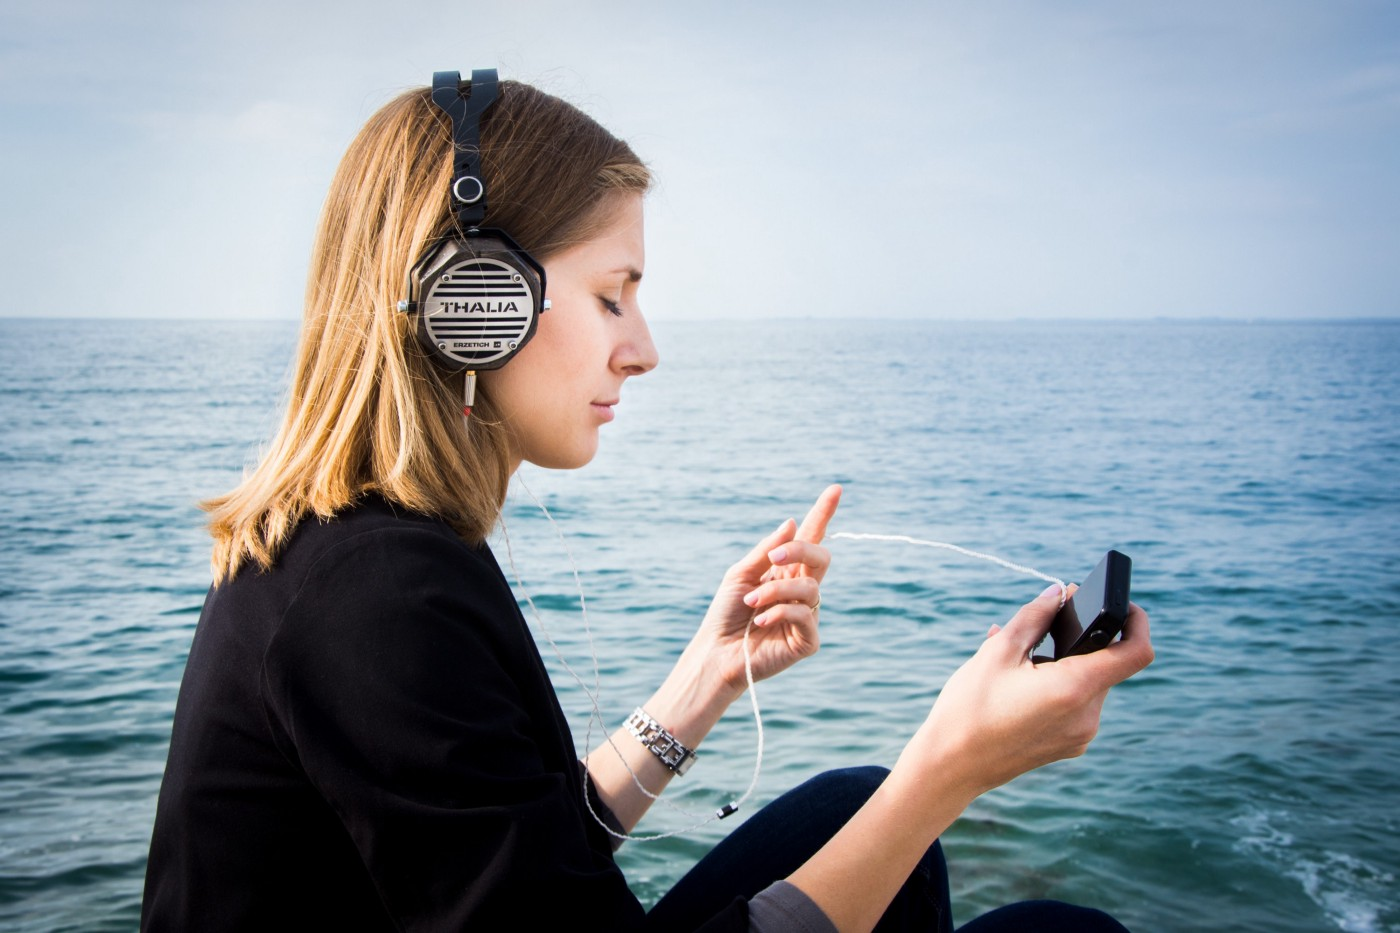 A girl listening to headphones while sitting in a body of water with a horizon and sky in the backround.